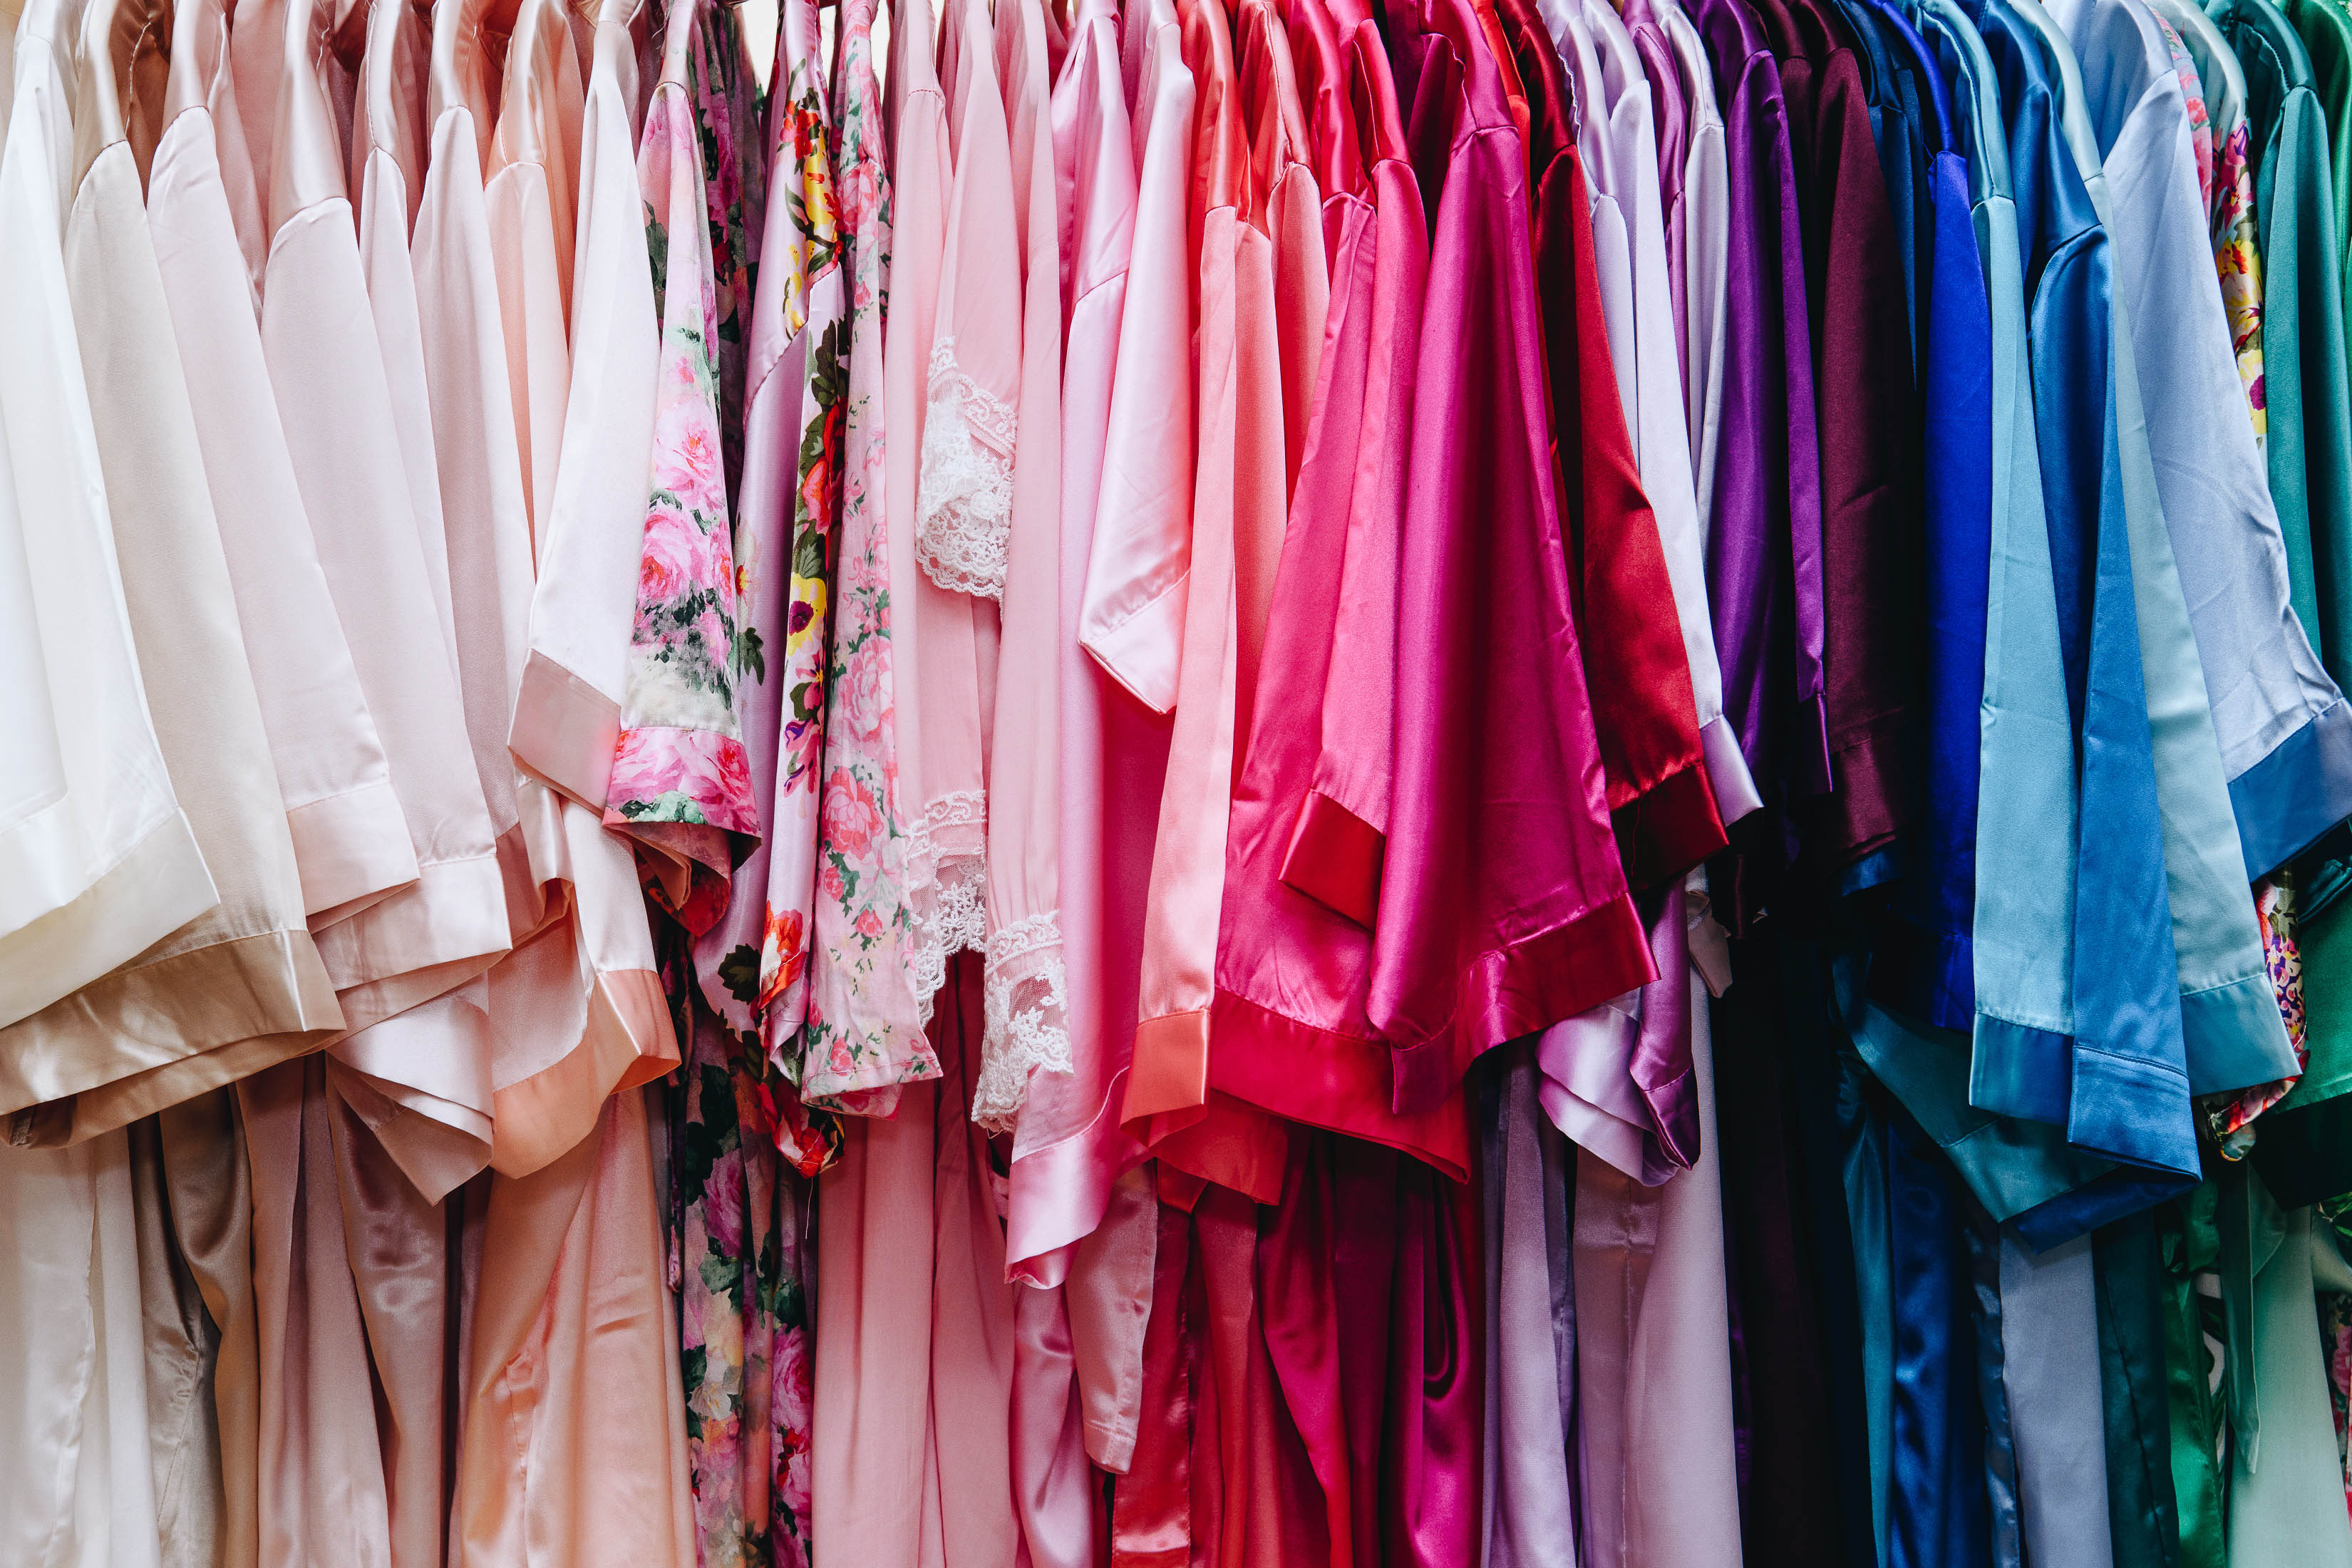 Bridal party robes in a rainbow of colors from David's Bridal